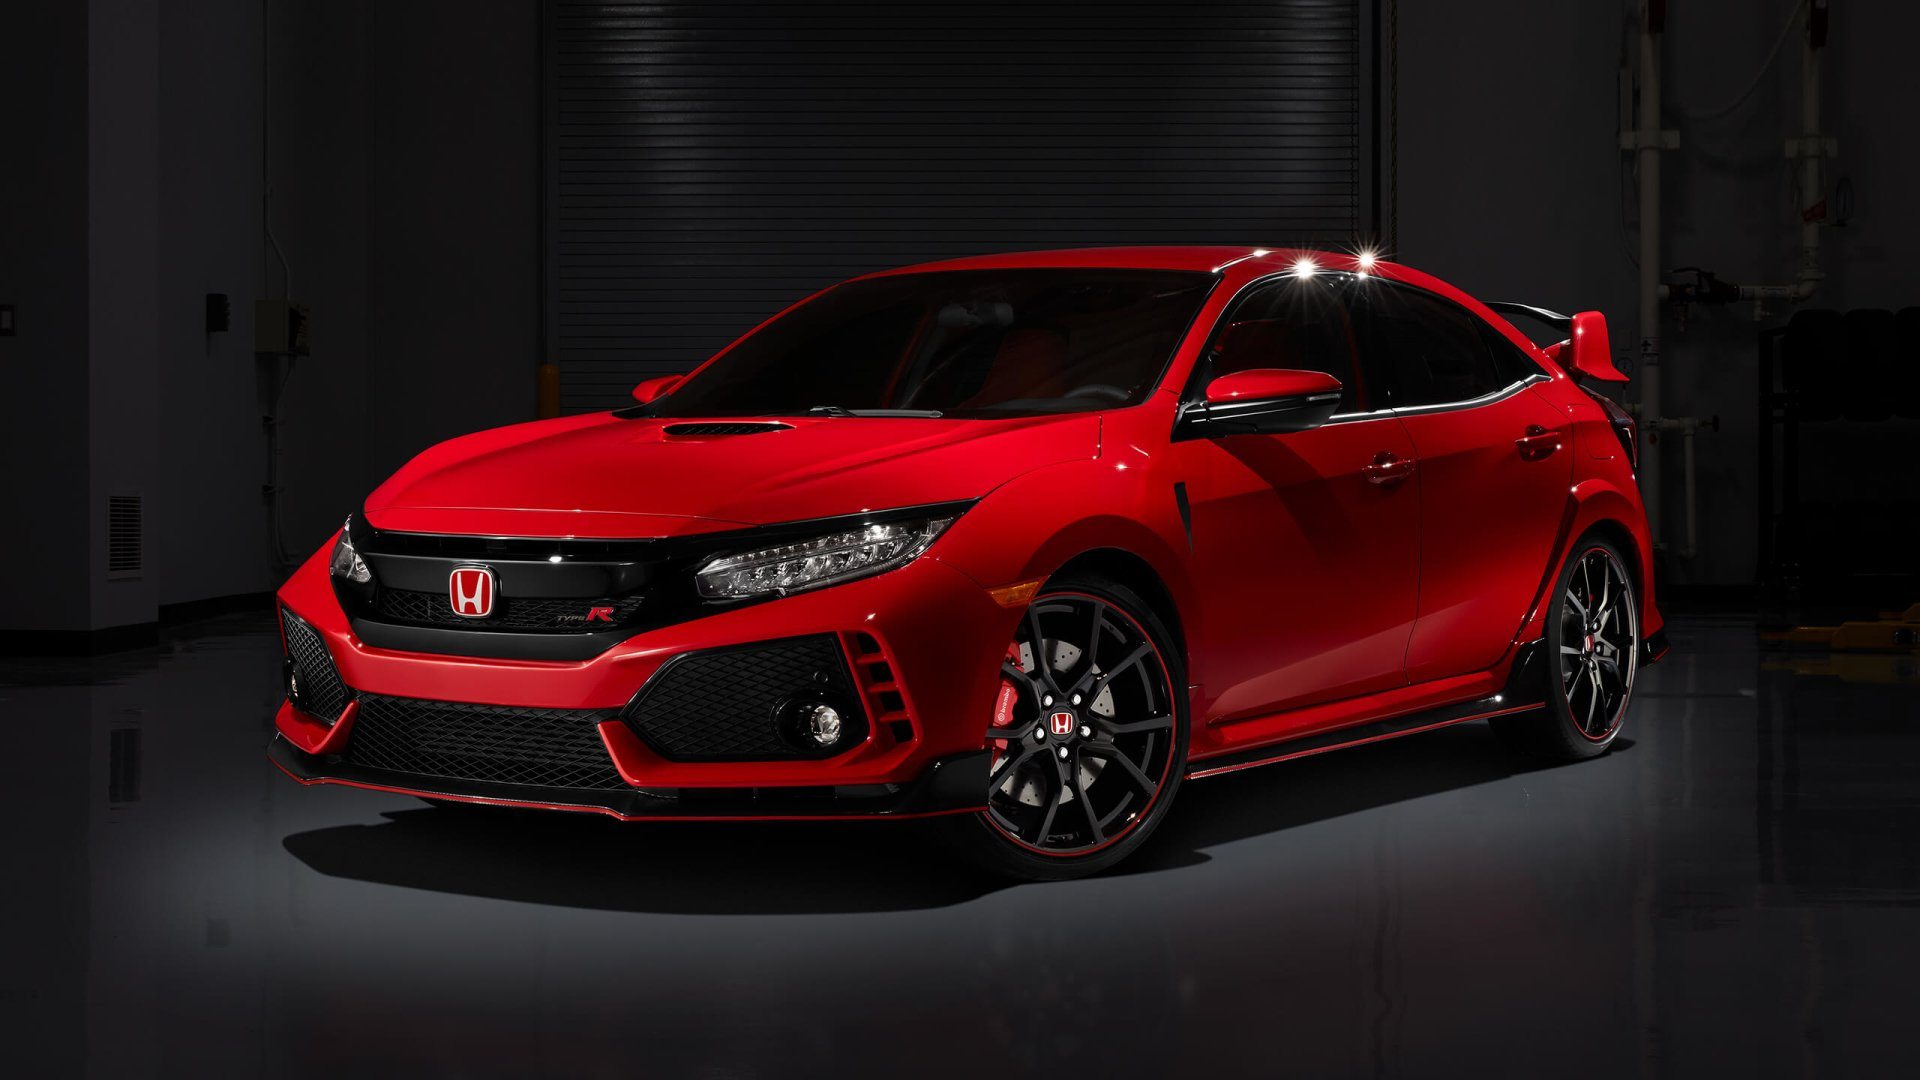 29 Honda Civic Type R Hd Wallpapers Background Images